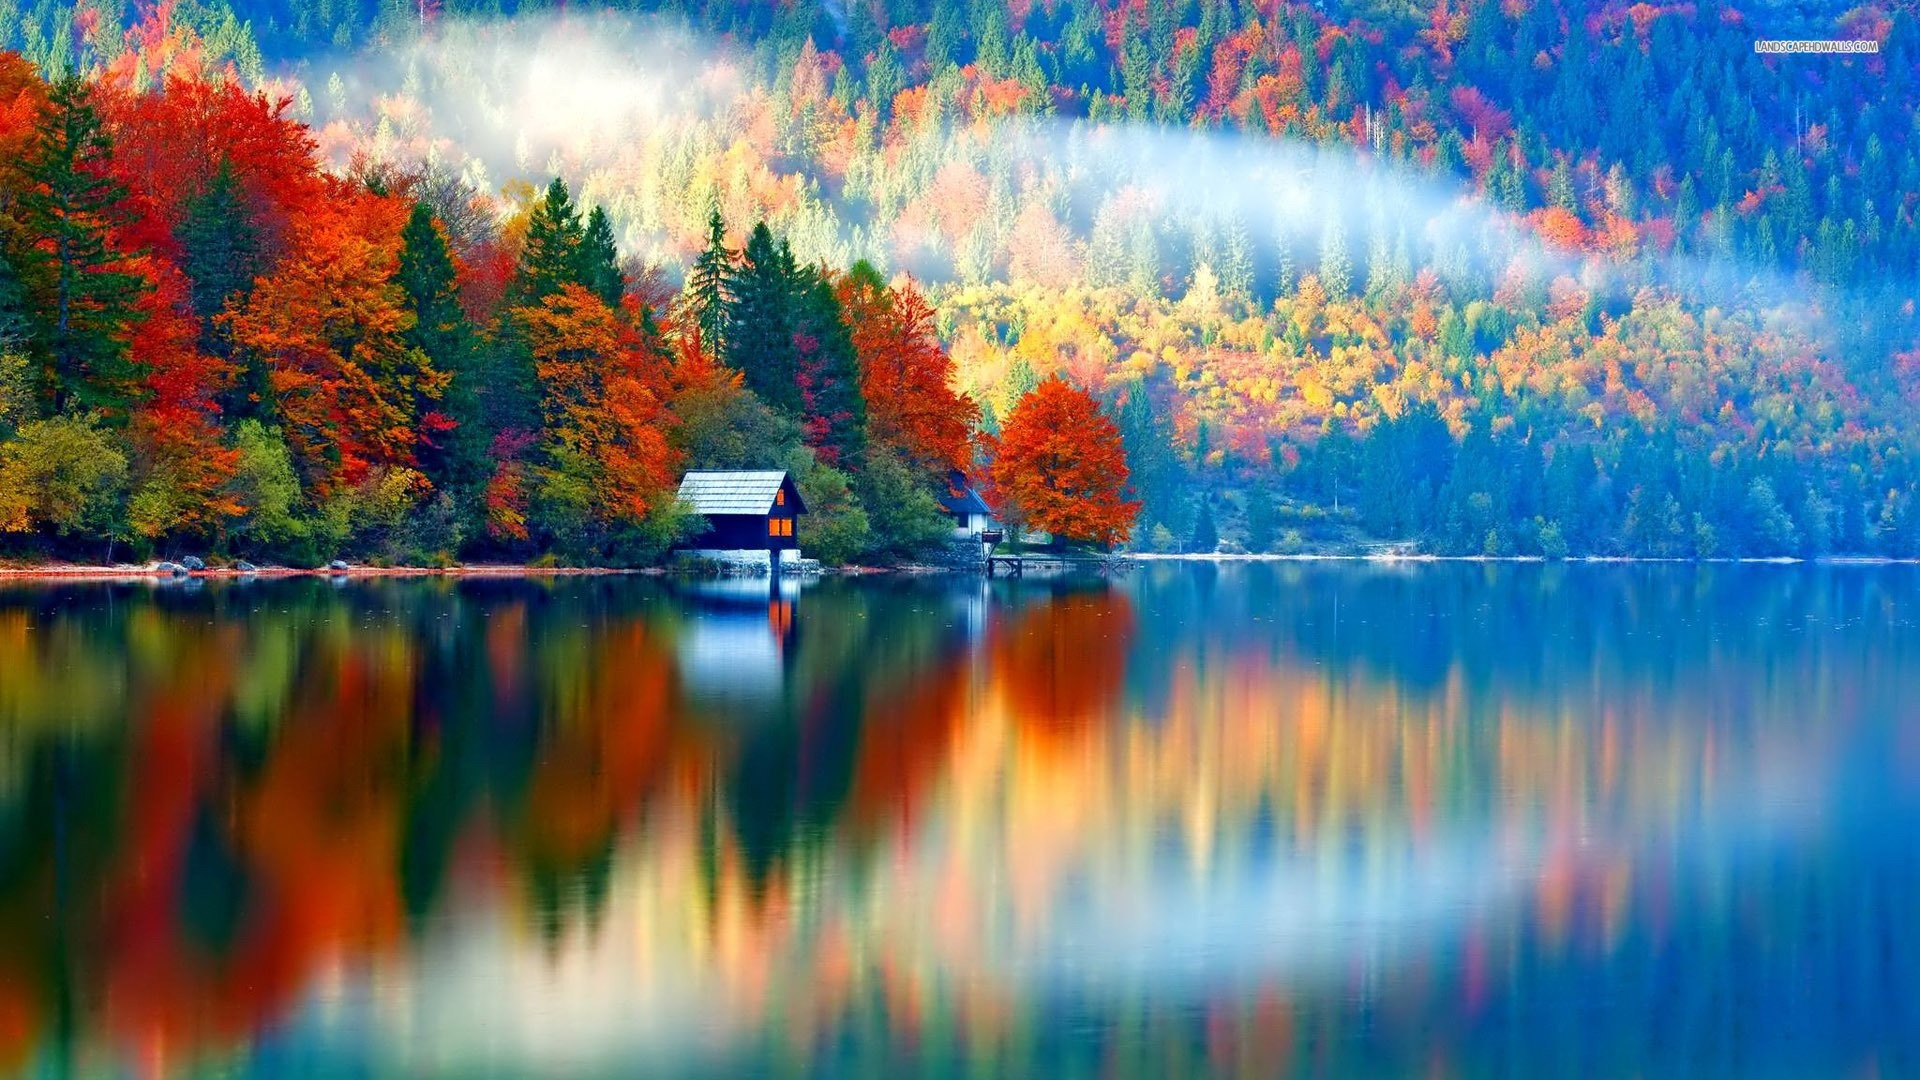 Fall wallpaper 70 images for Lakeview cabin download